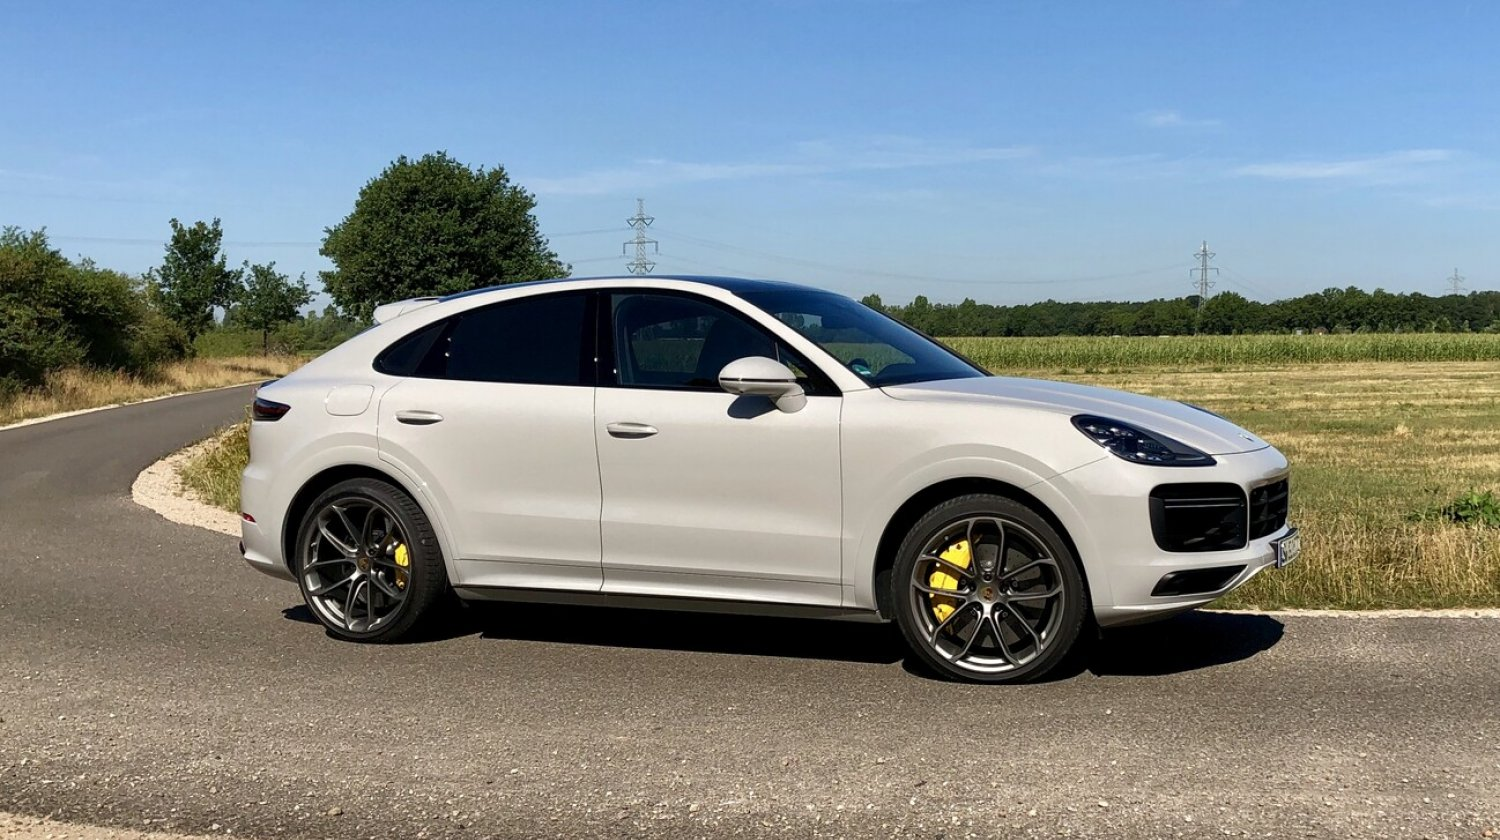 Porsche has updated its Cayenne PHEV model to the latest spec, giving it larger batteries to enable longer all-electric trips.